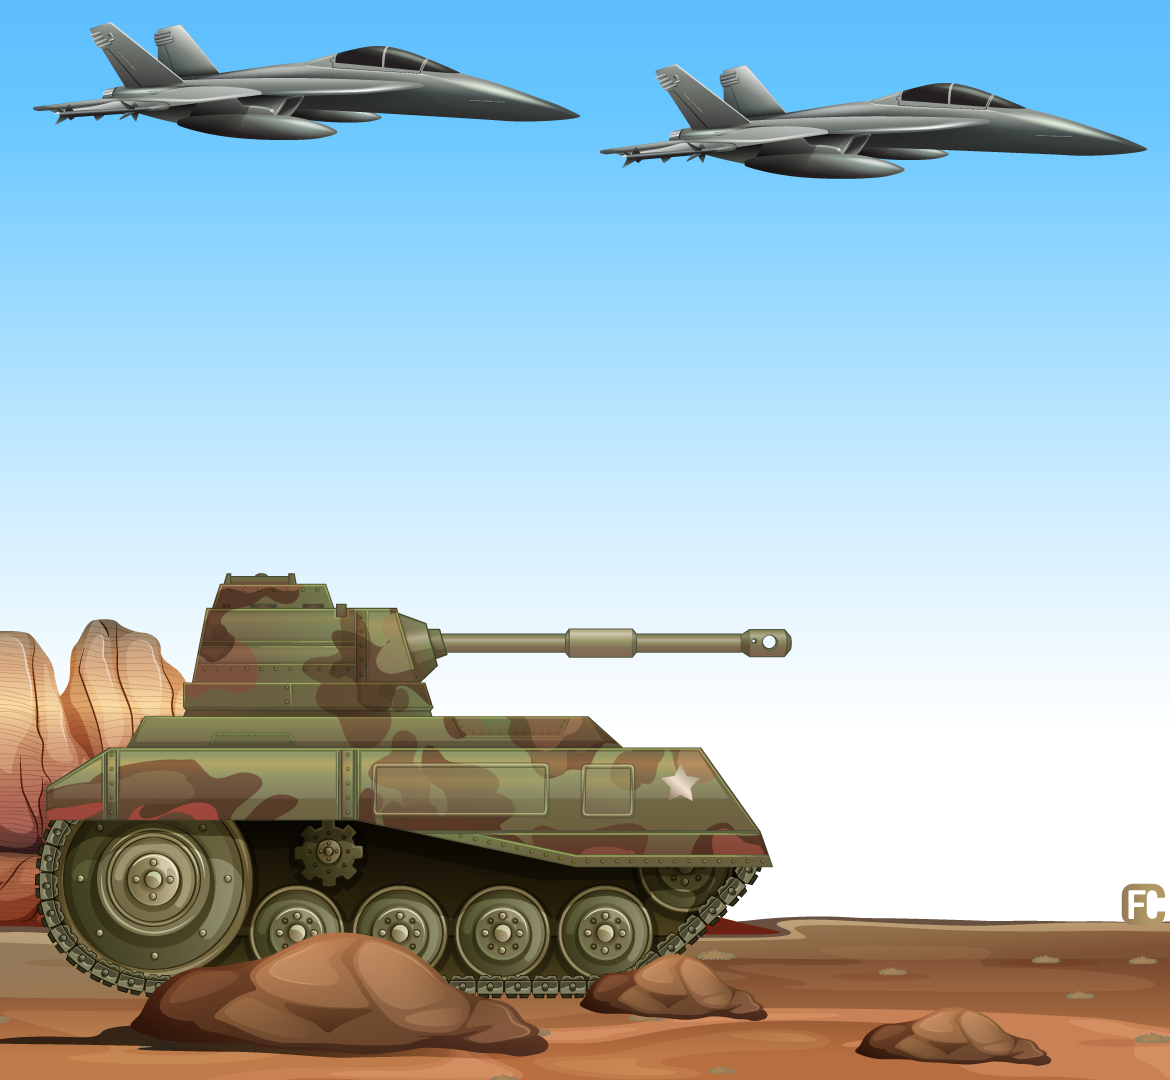 Tanks and planes